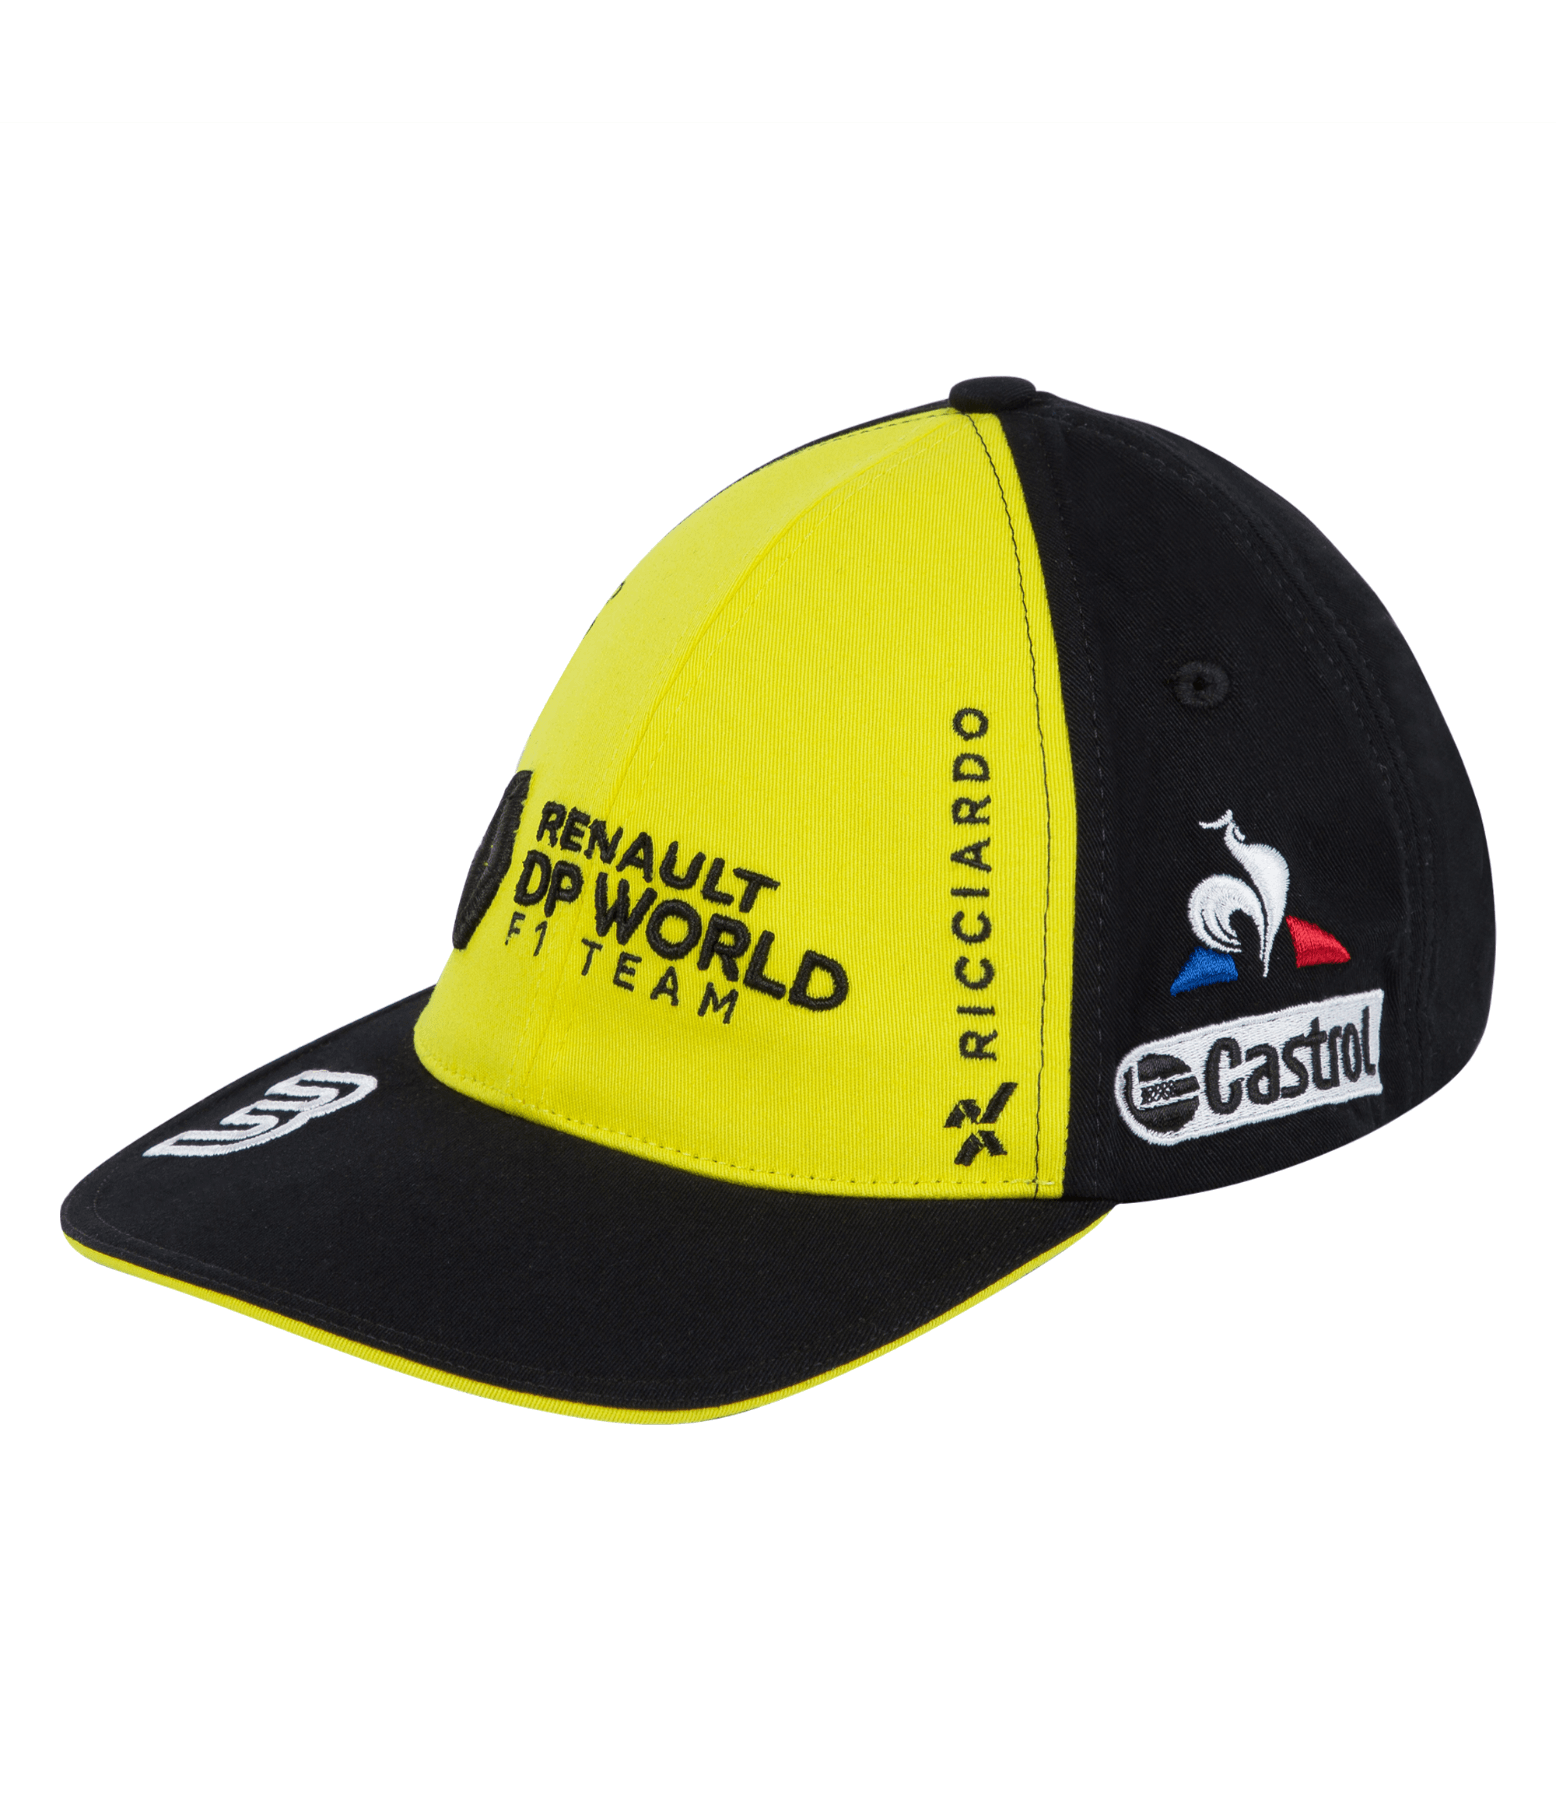 RENAULT DP WORLD F1® TEAM 2020 Ricciardo #3 kid's cap